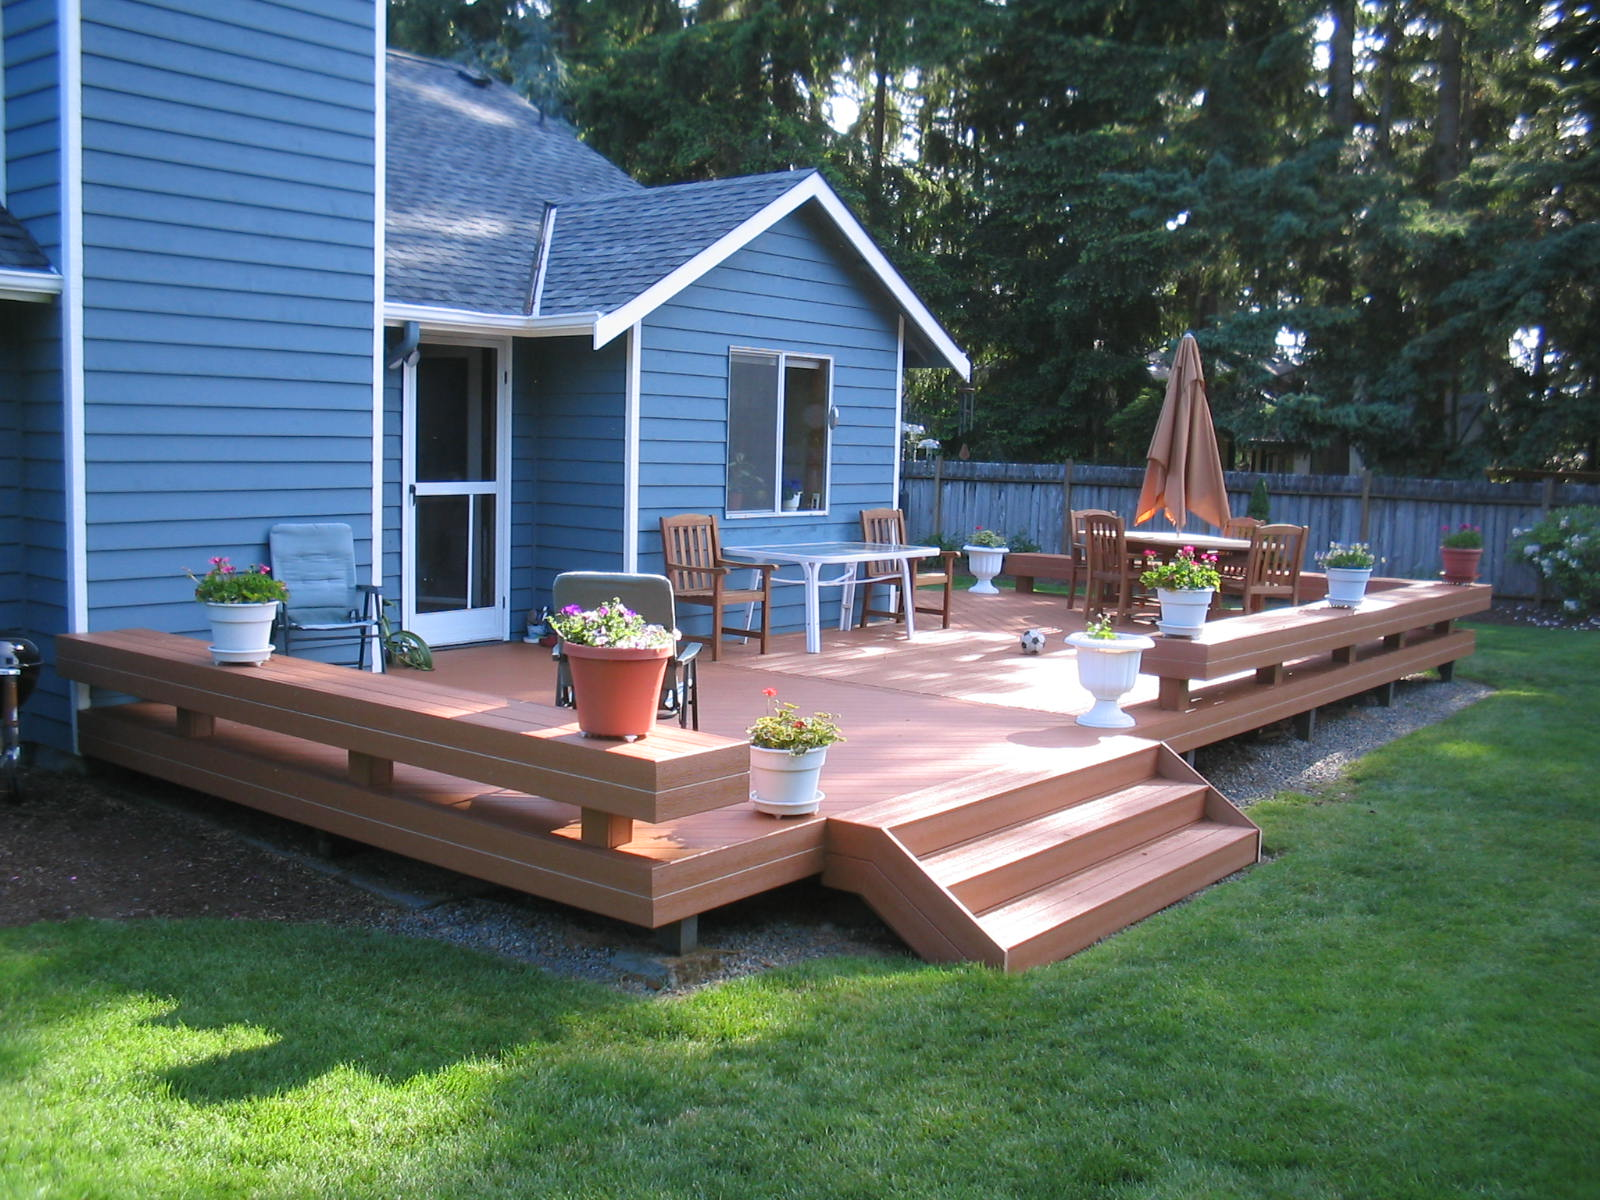 small deck design ideas  St Louis decks screened porches pergolas by Archadeck